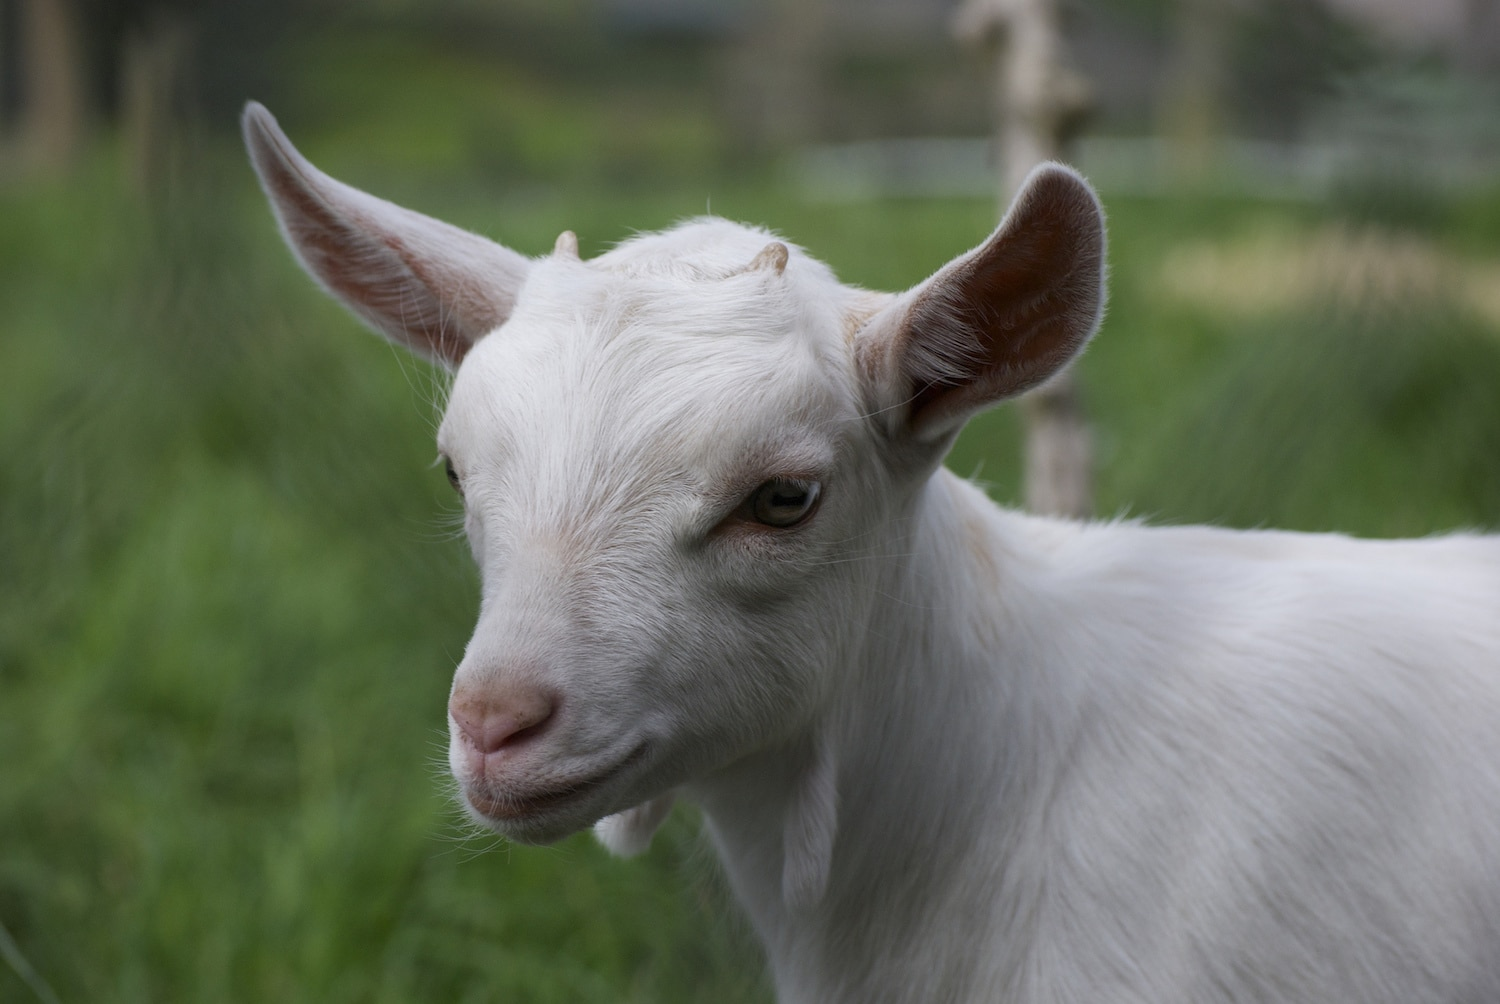 Dressing Up Like A Duck Helps This Baby Goat Deal With Anxiety - Rescue goat suffers anxiety calms duck costume